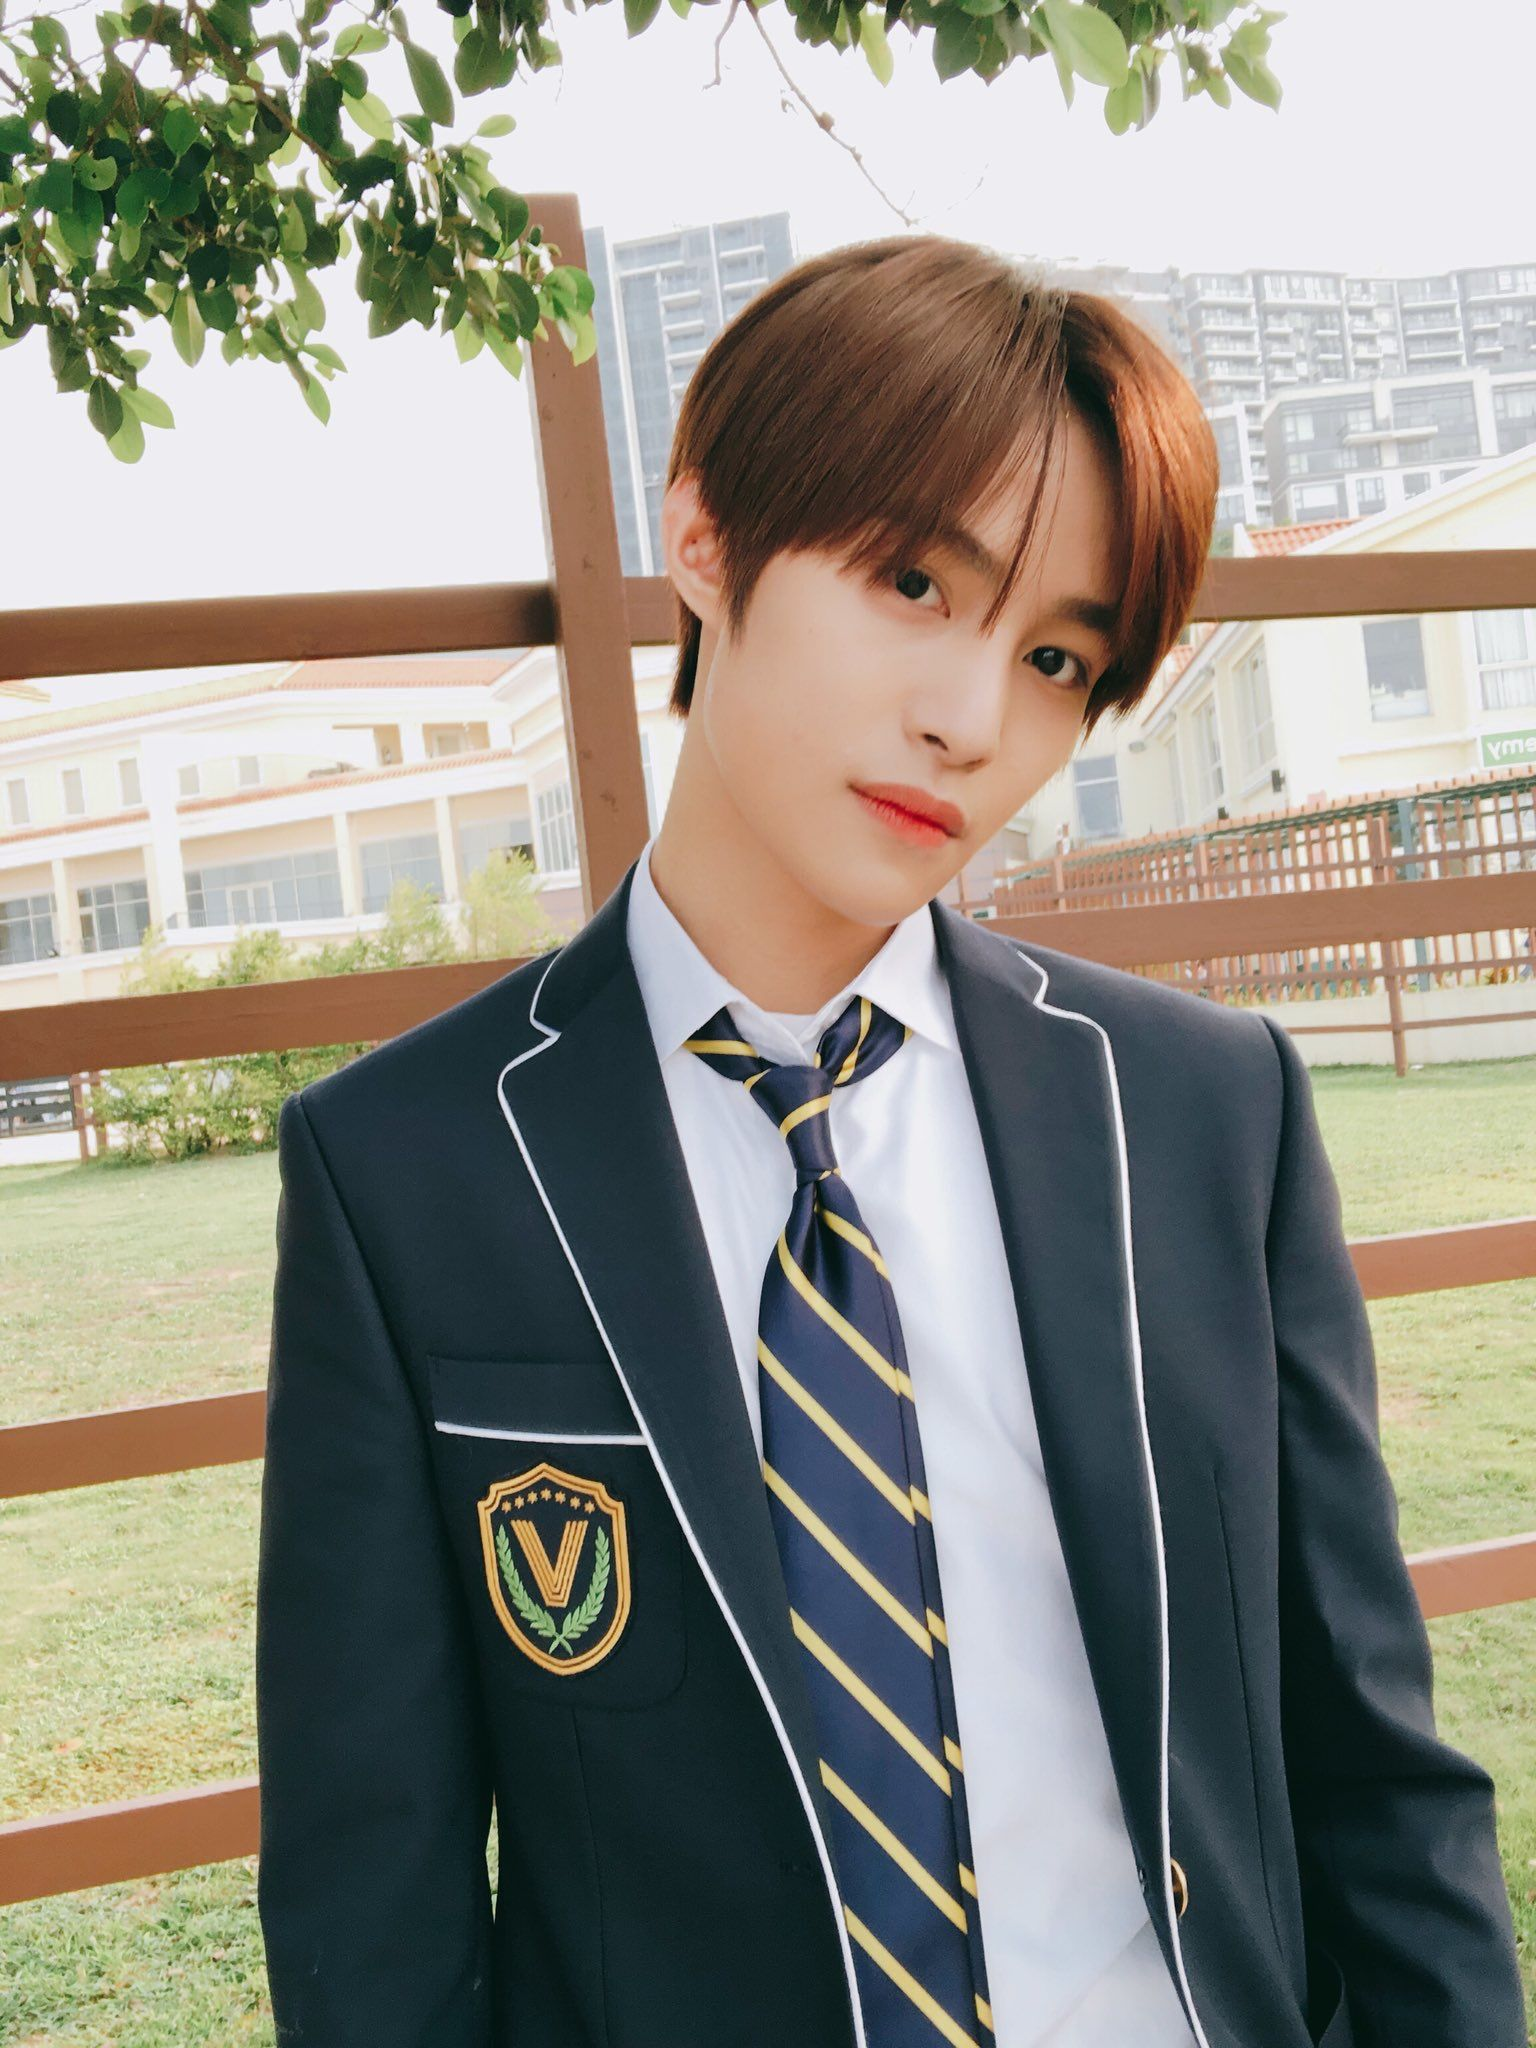 He is the main rapper and main dancer of the chinese male idol group wayv. Pin by 𝒱𝒾𝑜𝓁𝑒𝓉 on NCT ALL & WayV | Yangyang wayv, Nct, Nct ...